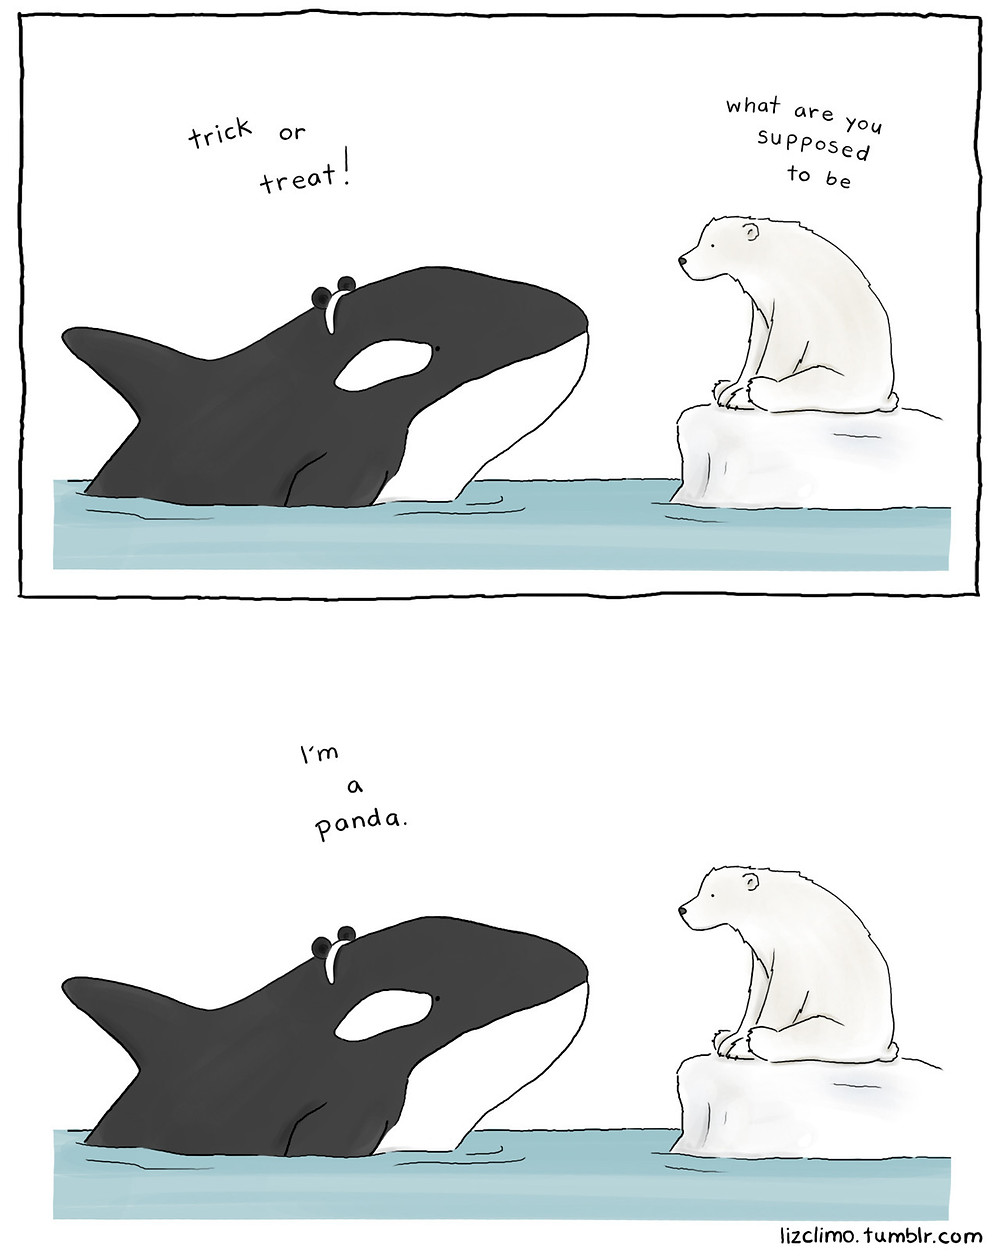 """Comic strip with two frames. In the first frame, an orca is wearing a tiara with round black ears and has its head out of the water. It says """"Trick or treat!"""" to a polar bear sitting on a block of ice, looking at it. The polar bear responds """"What are you supposed to be?"""". In the second frame, the orca answers """"I'm a panda""""."""